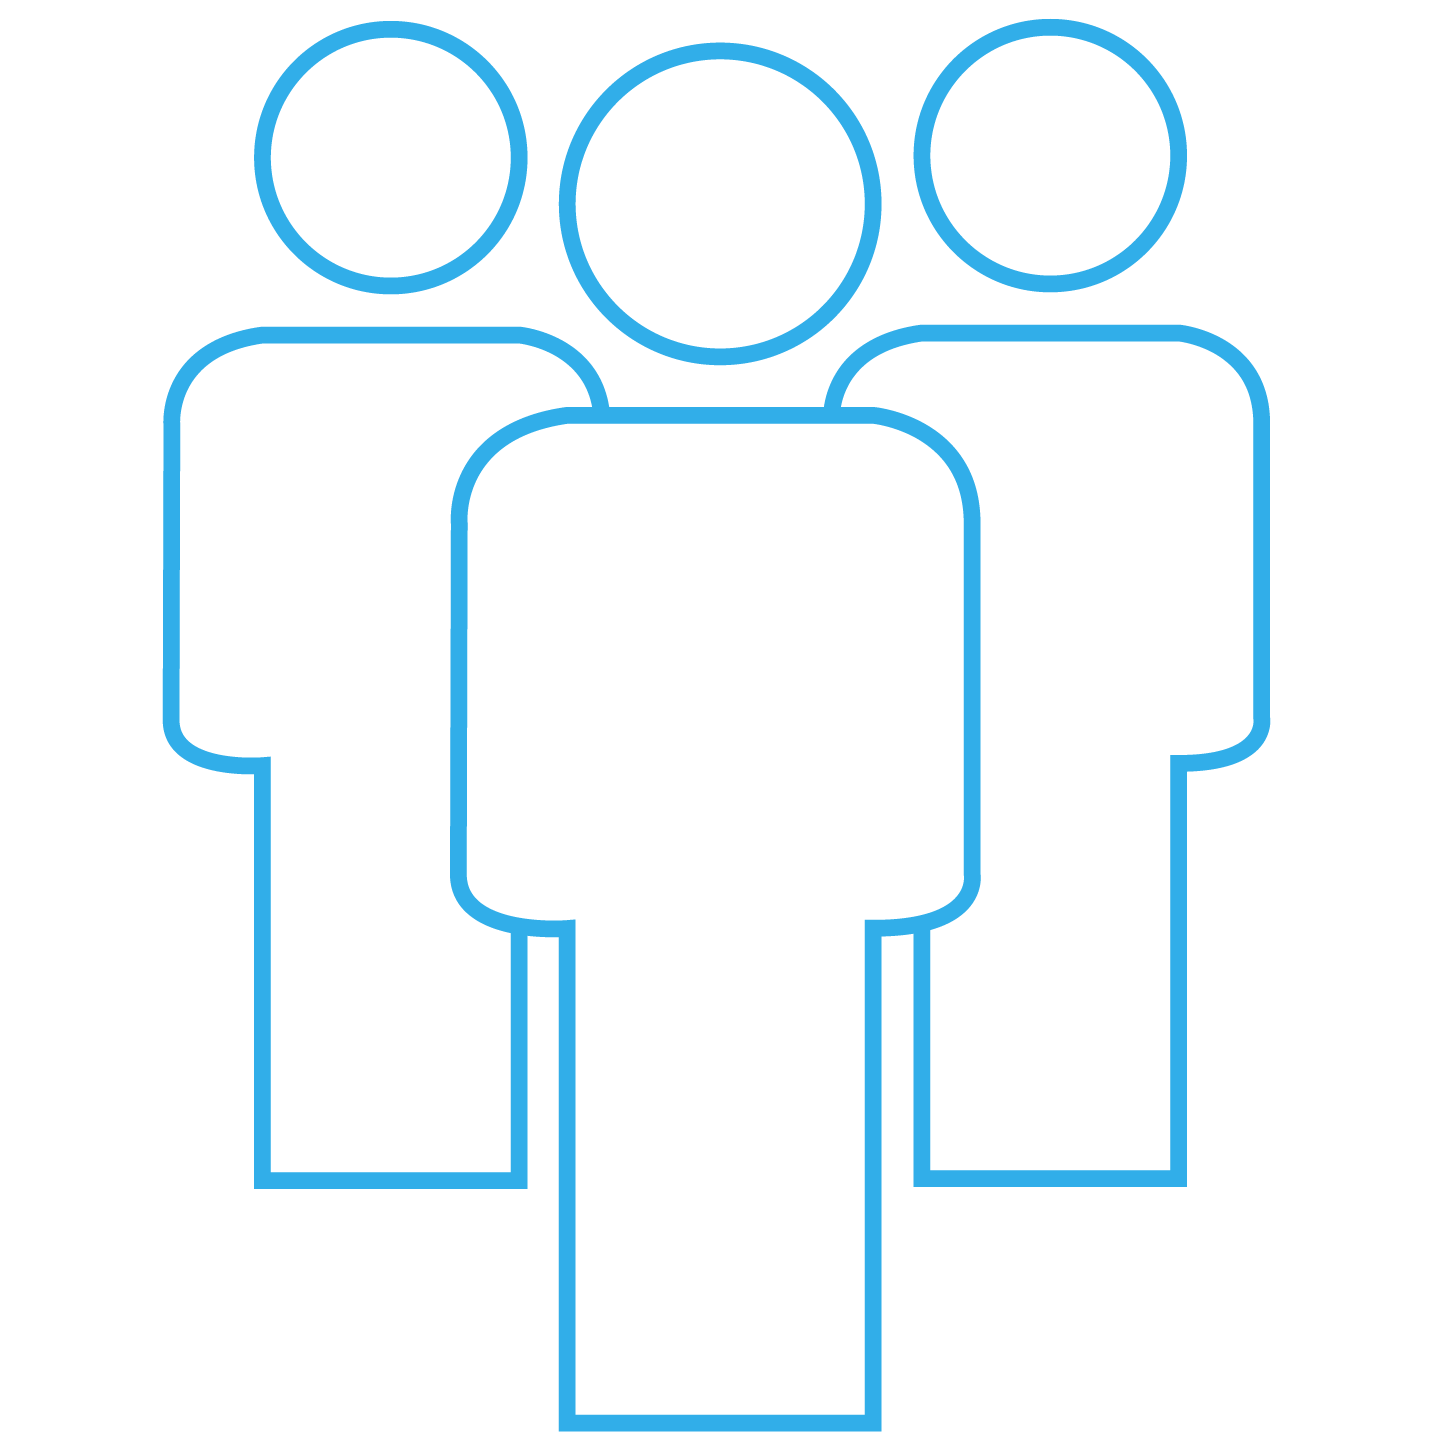 Enterprise-Page-Icons-04.png